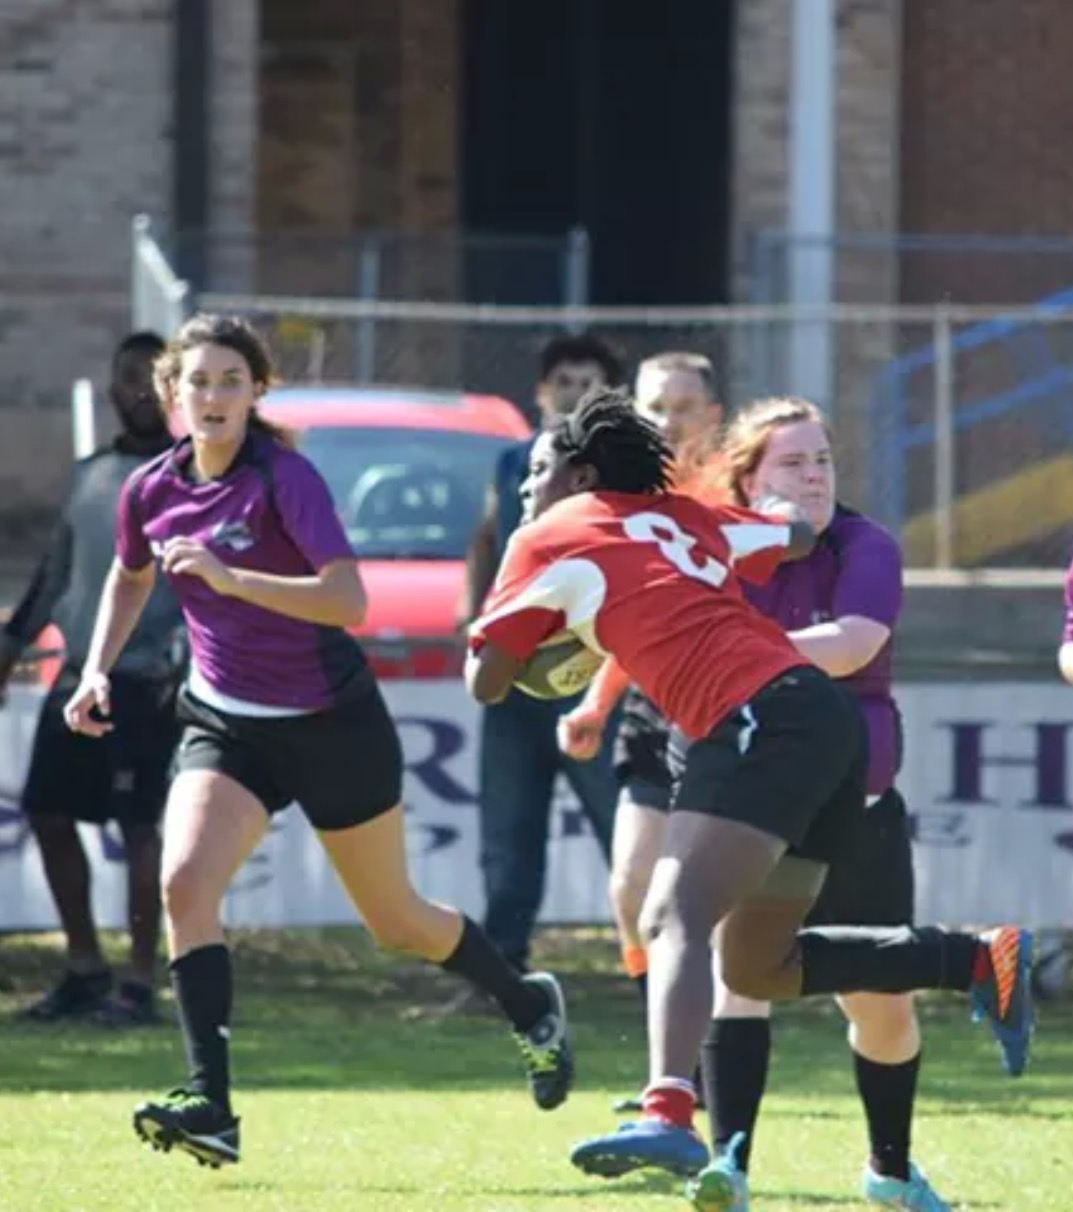 Thompson delivers a stiff arm to a defender. Photo Courtesy of Alabama Rugby.